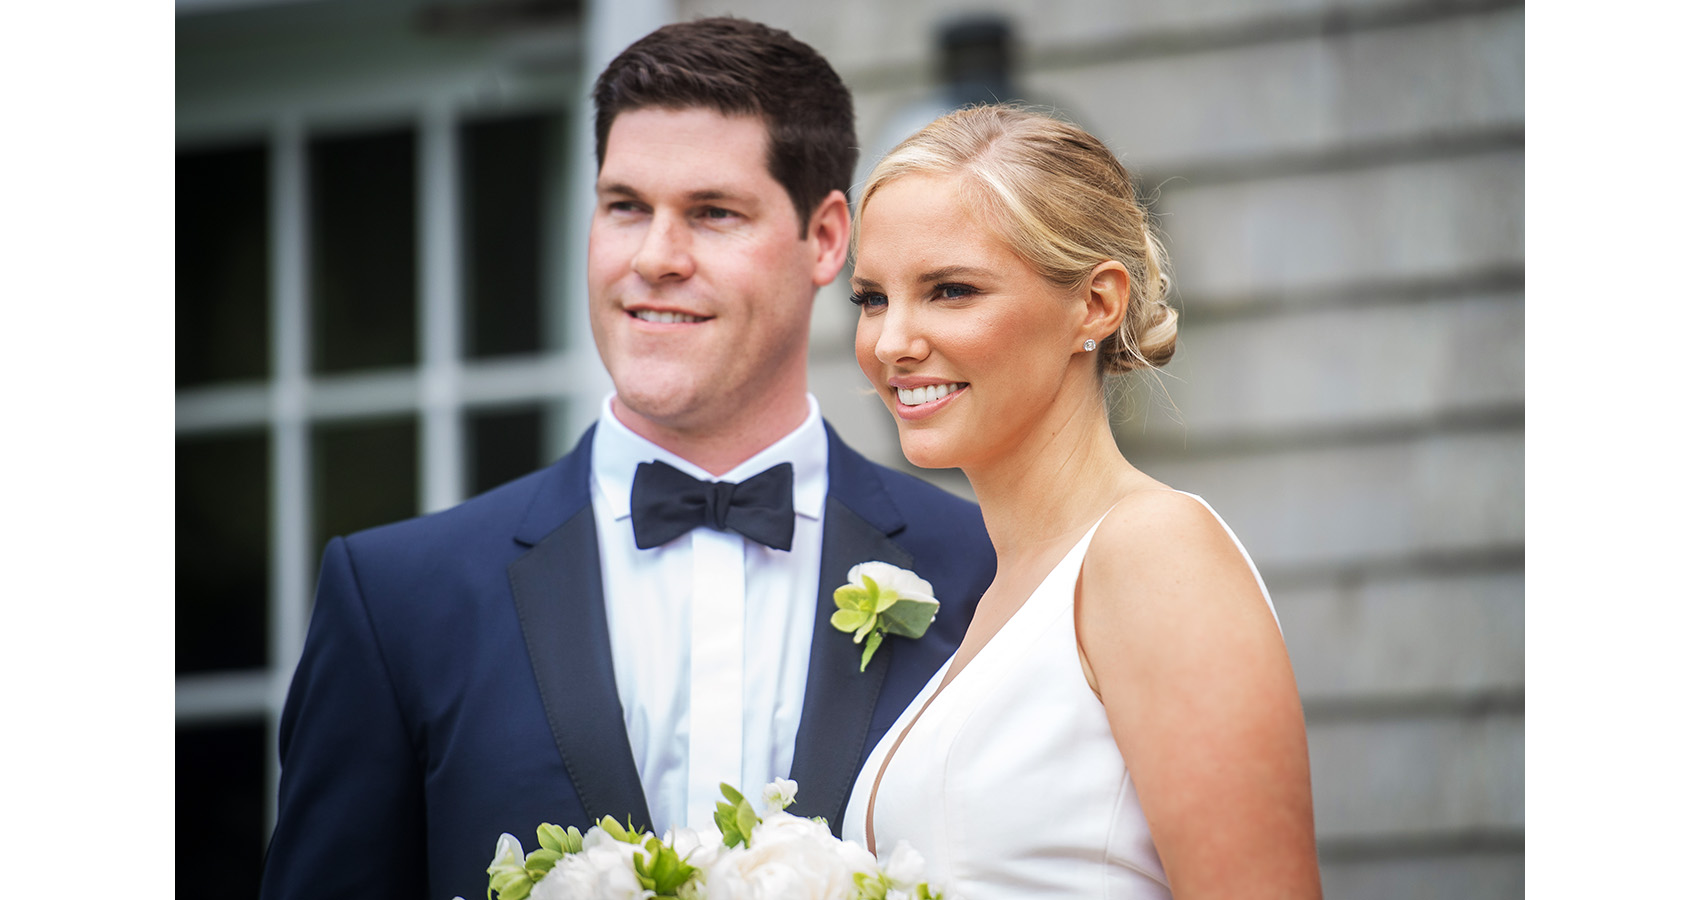 bride in white dress and white bouquet, groom in navy suit and white boutonnière